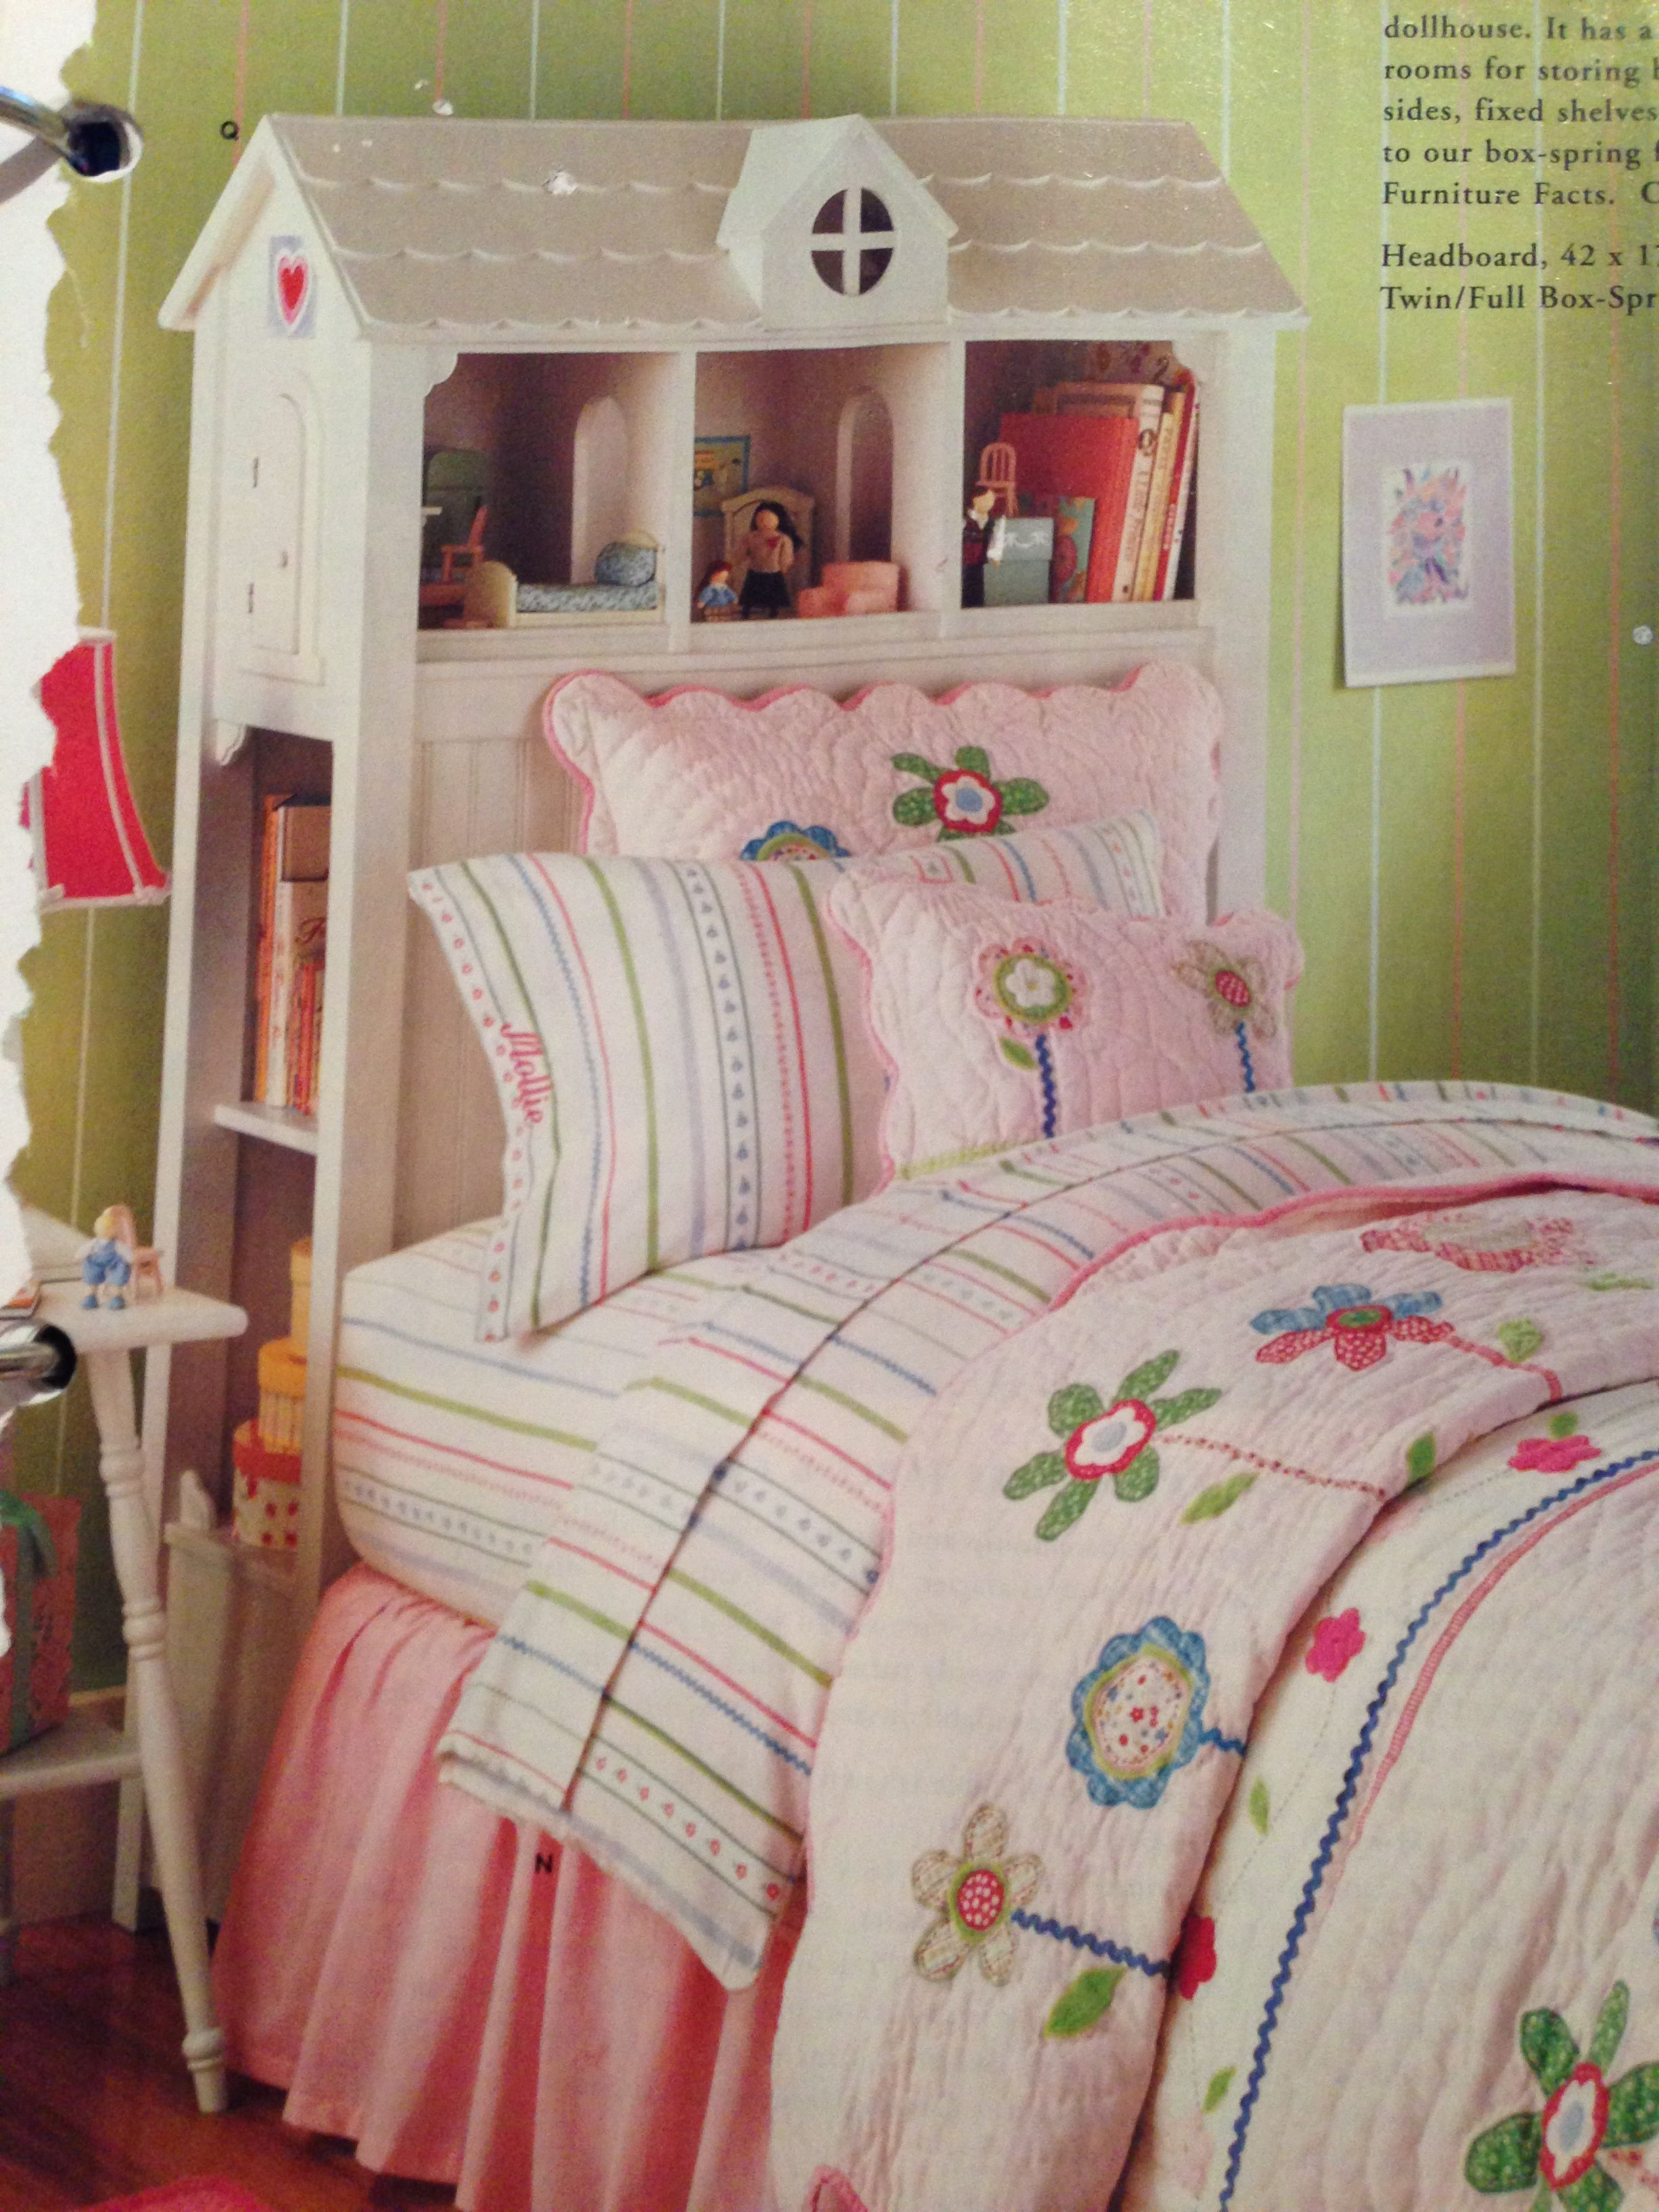 Pottery Barn dollhouse headboard 550 (DIY!) Spring